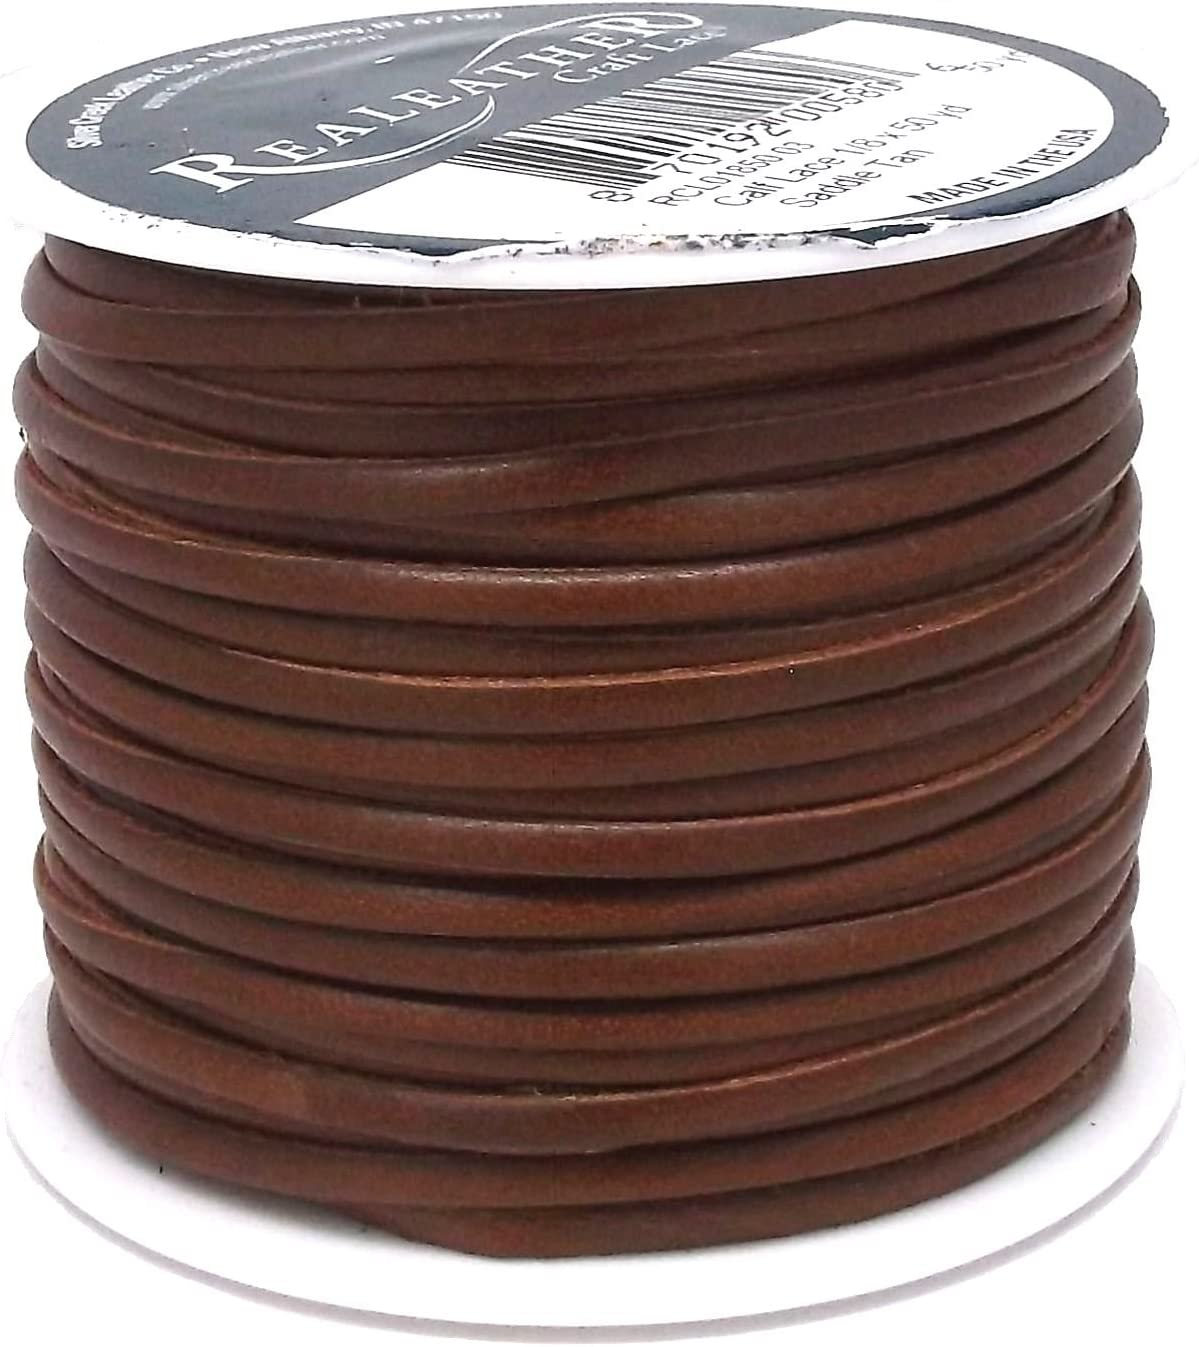 Saddletan Superior Leather Lace by Real Leather 1//8 x 50 yds